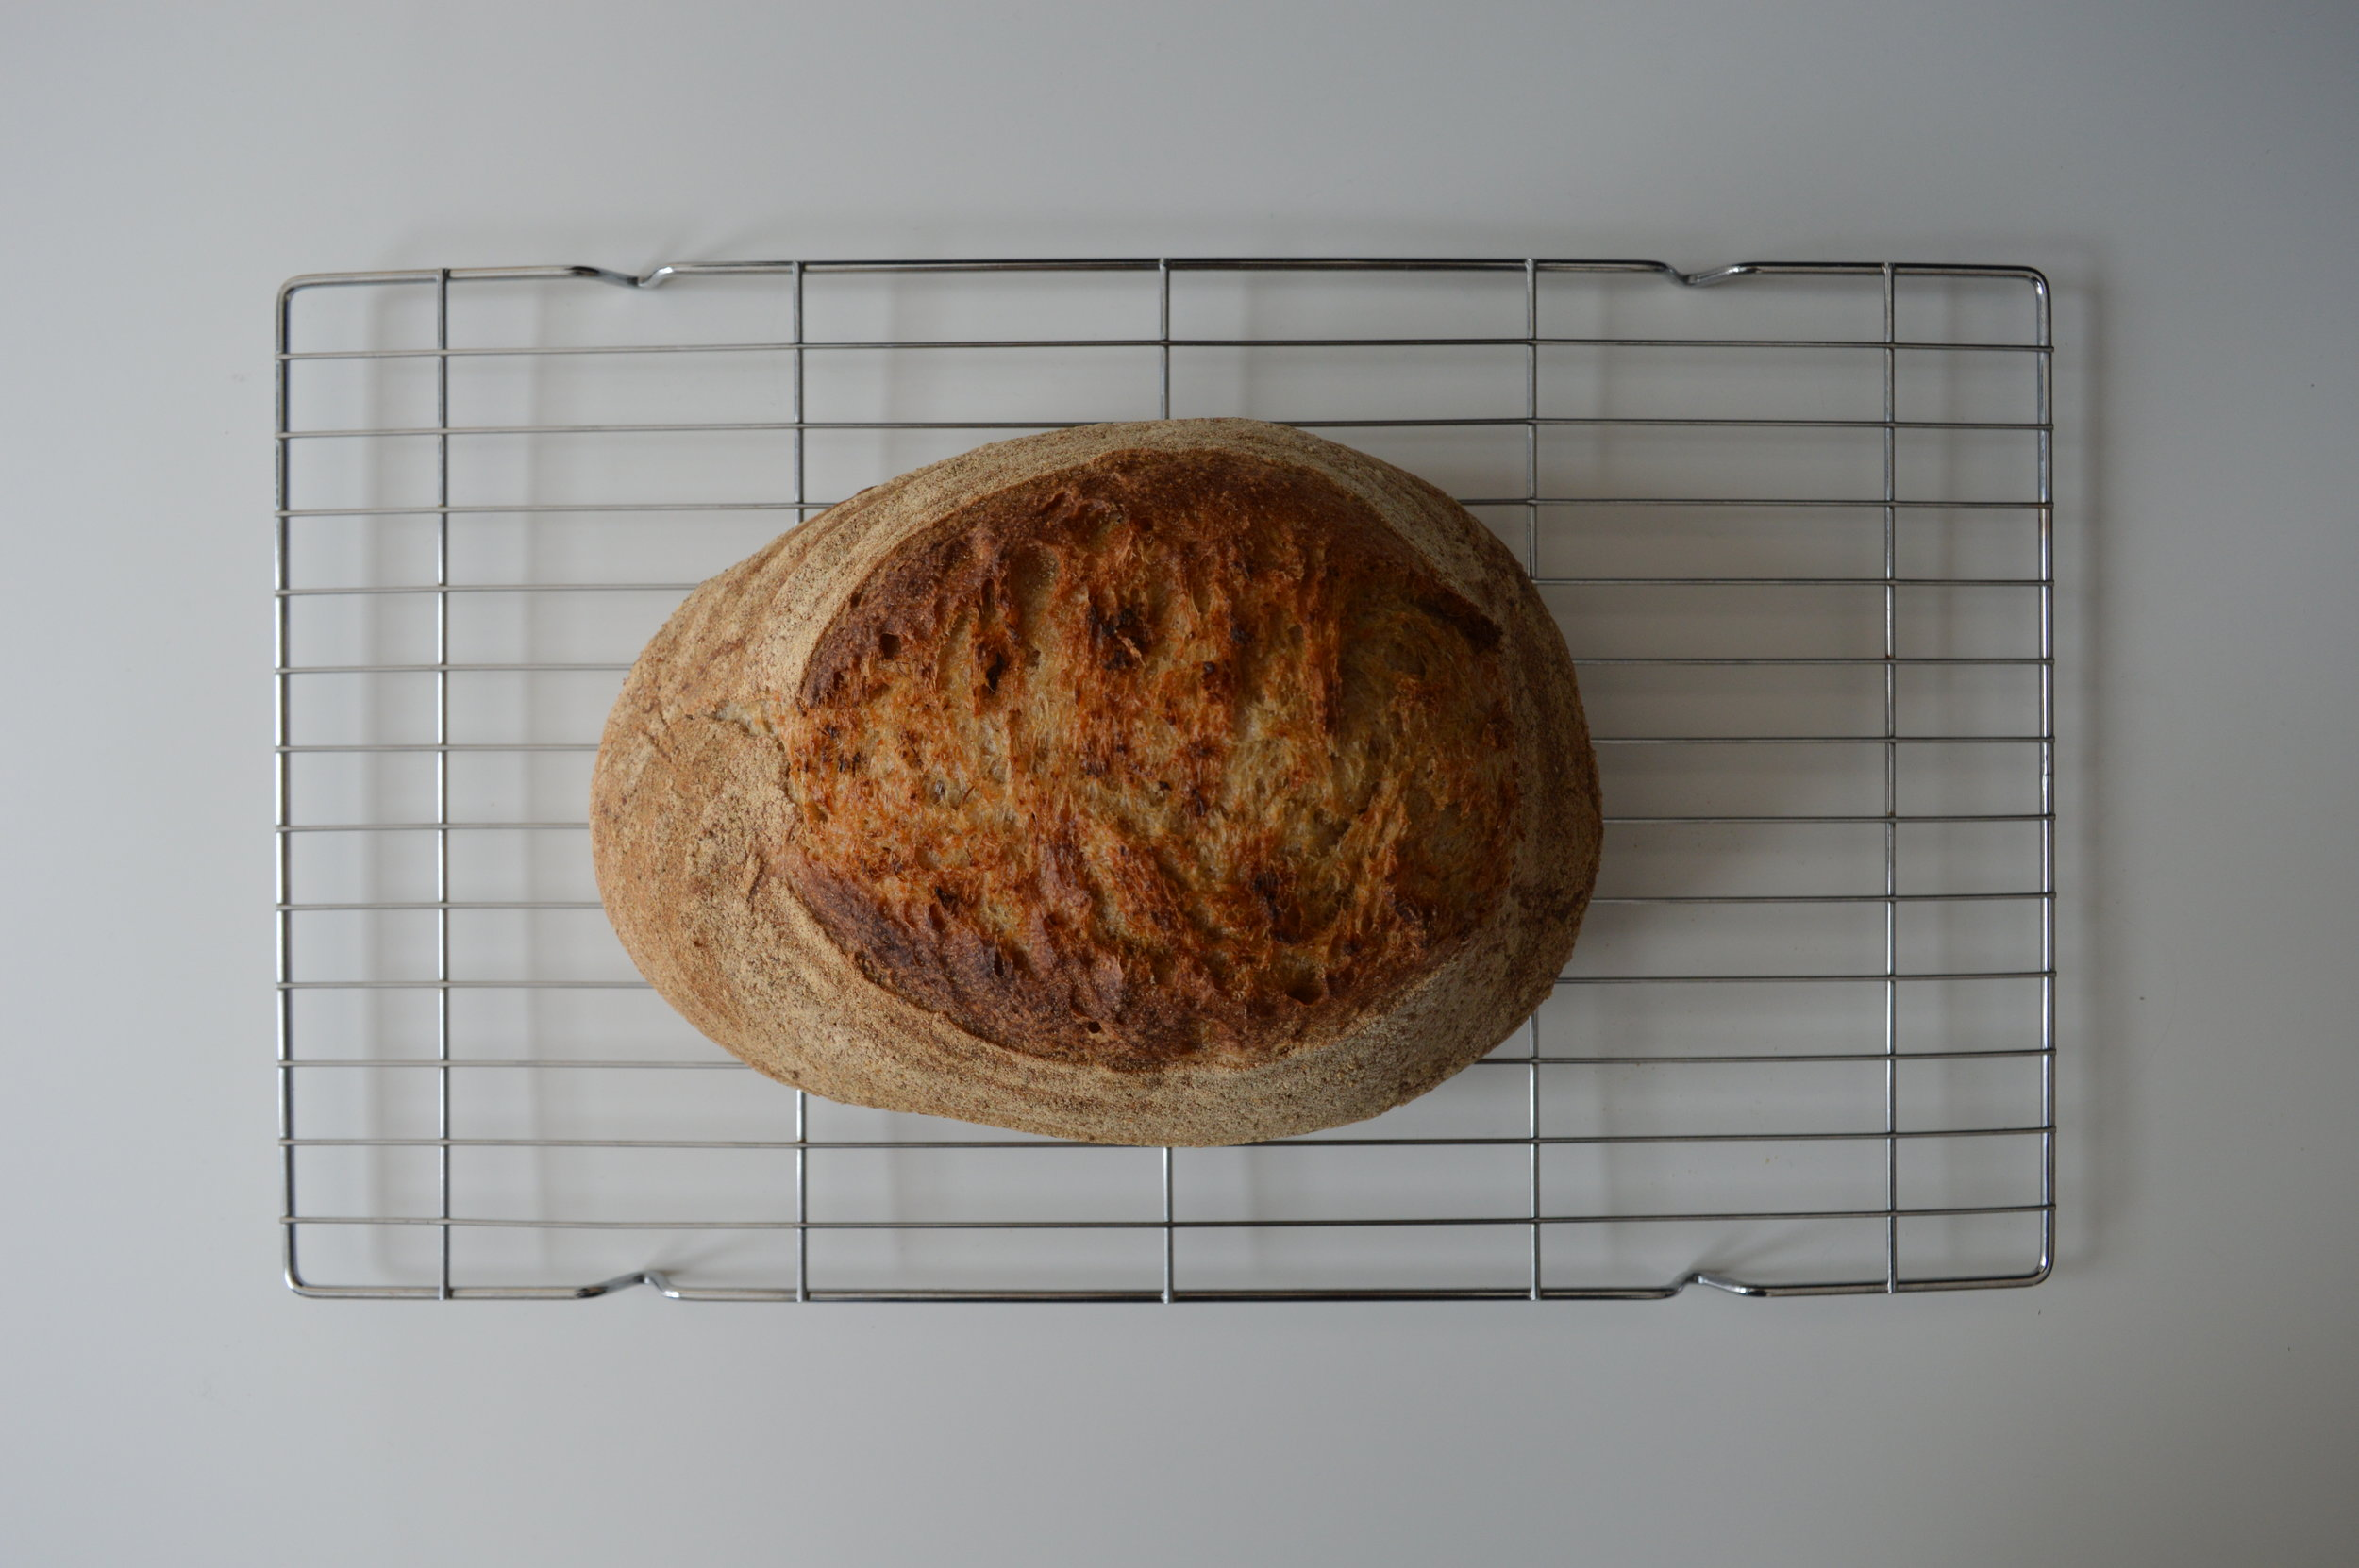 Small regular boule